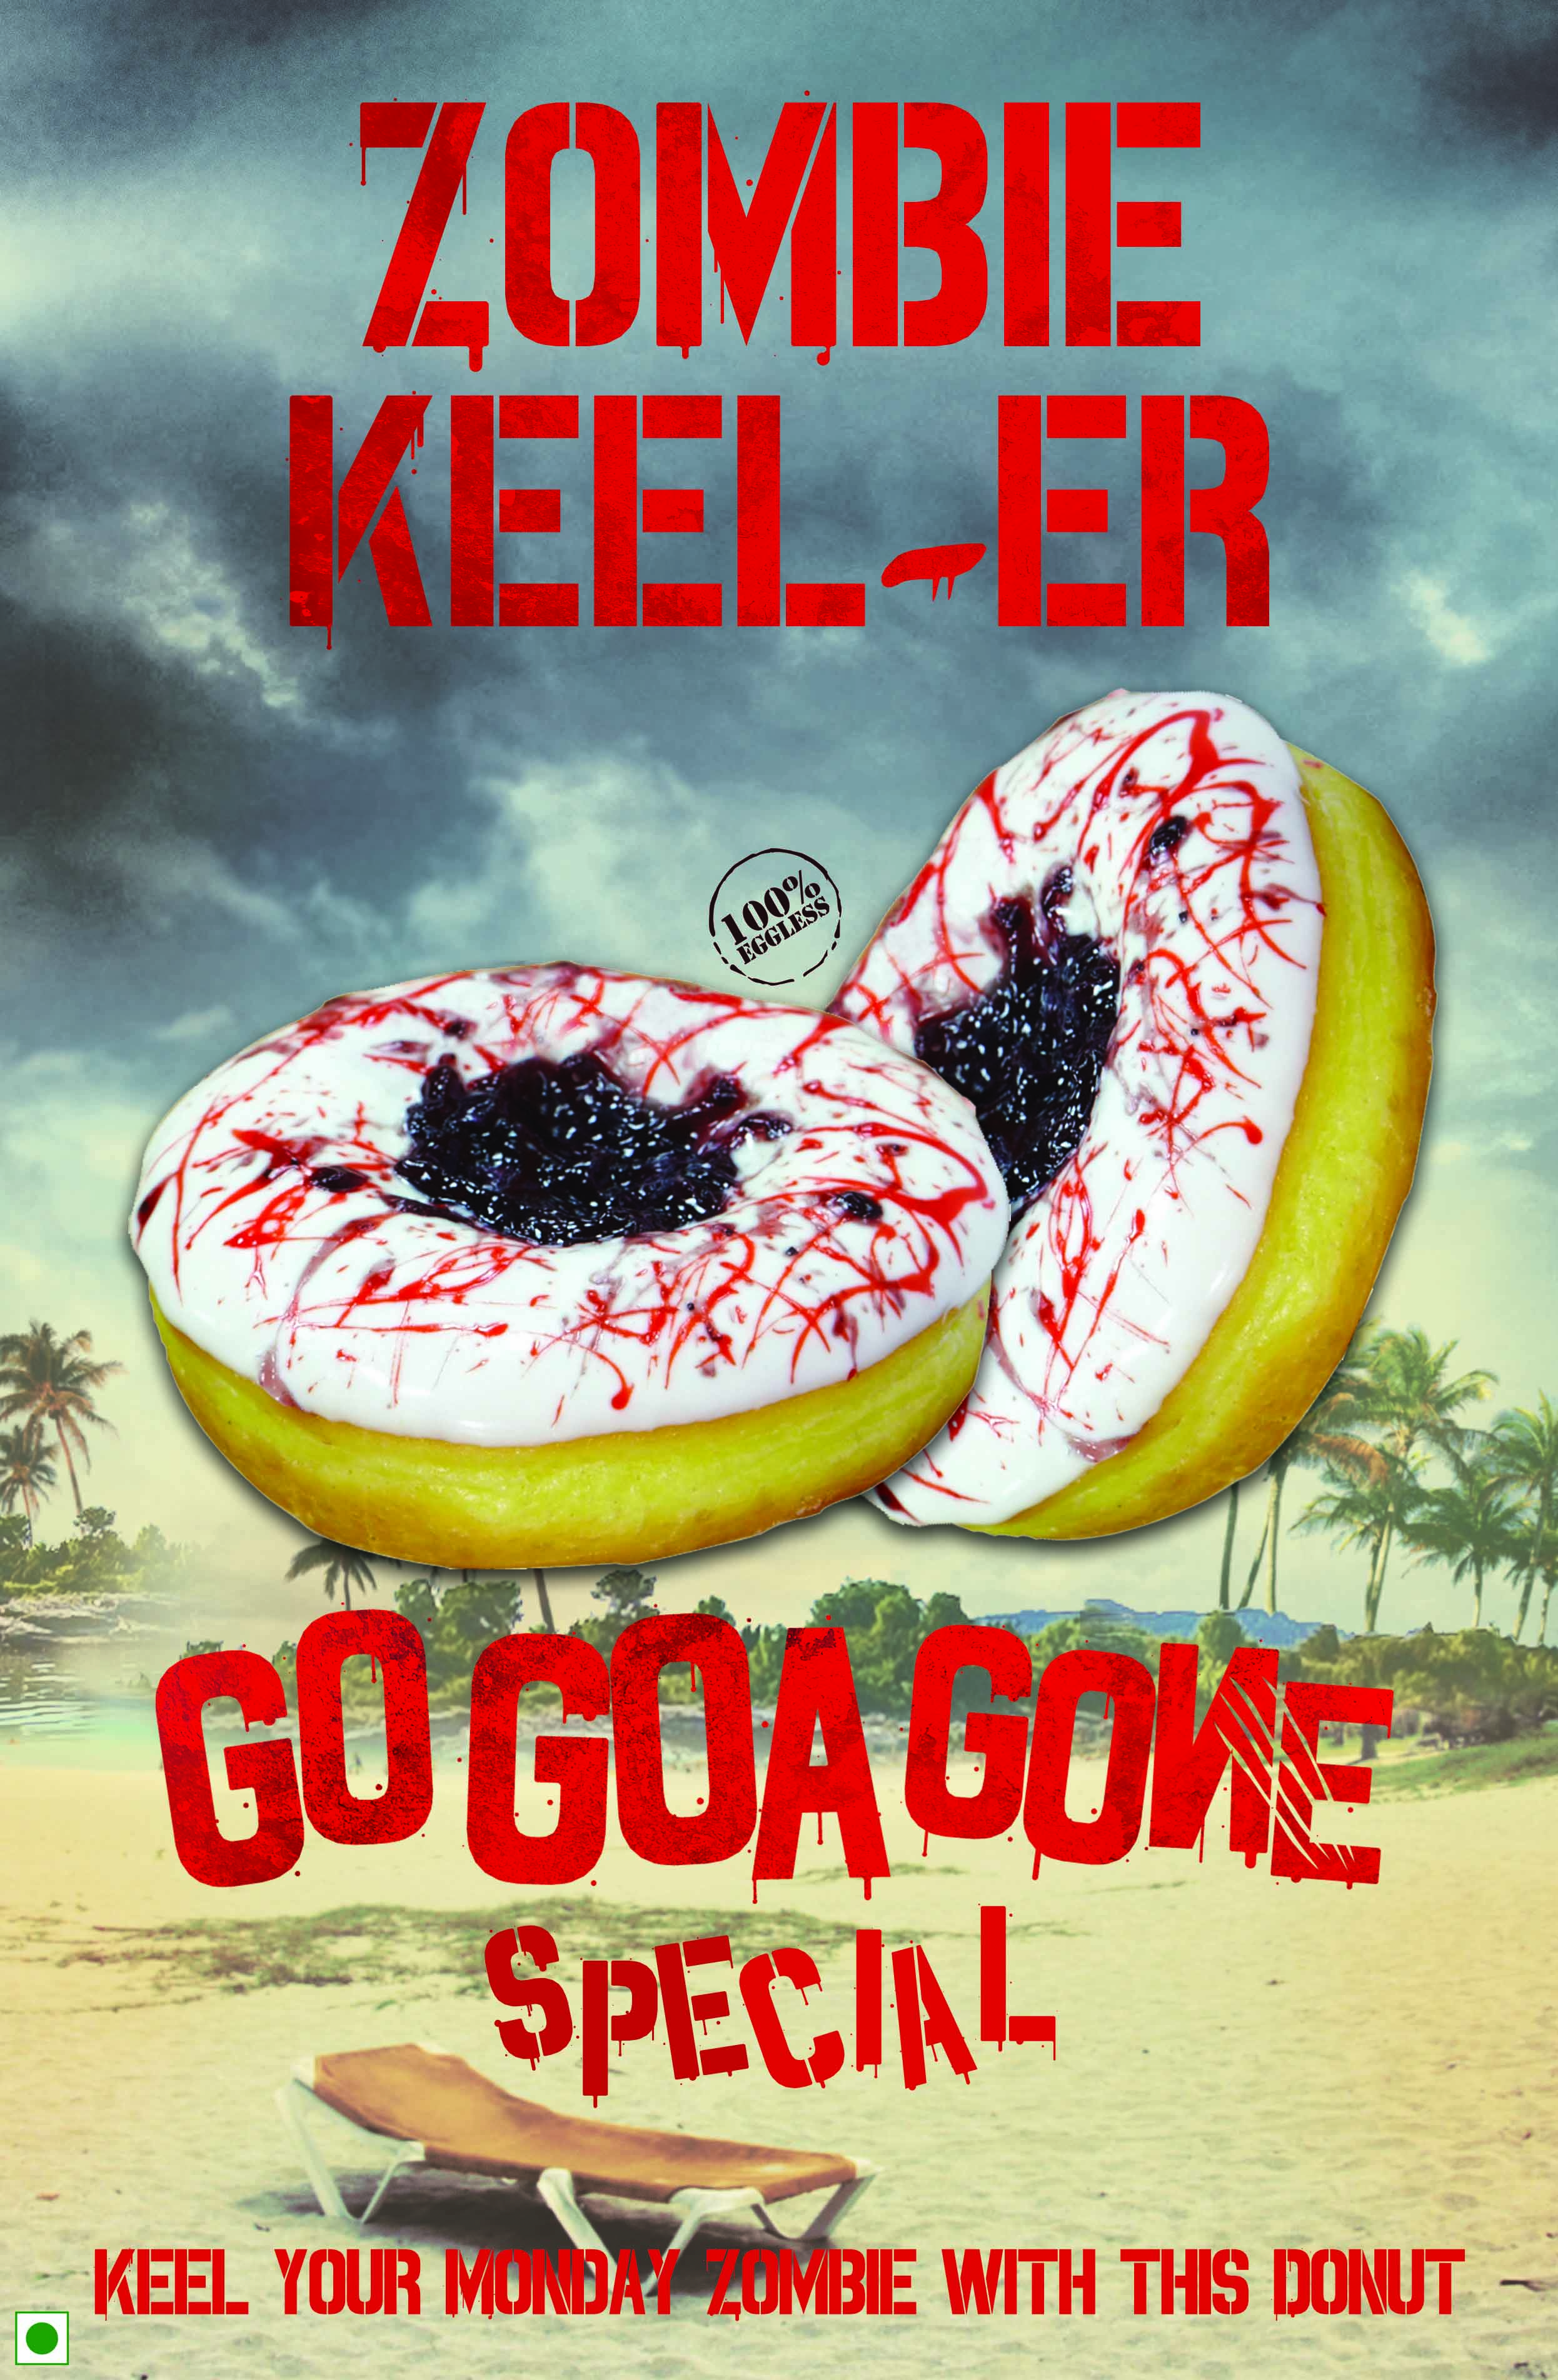 Zombie Keel er Go Goa Gones Cool Tie up with Mad Over Donuts with a Zoombie Keel er!